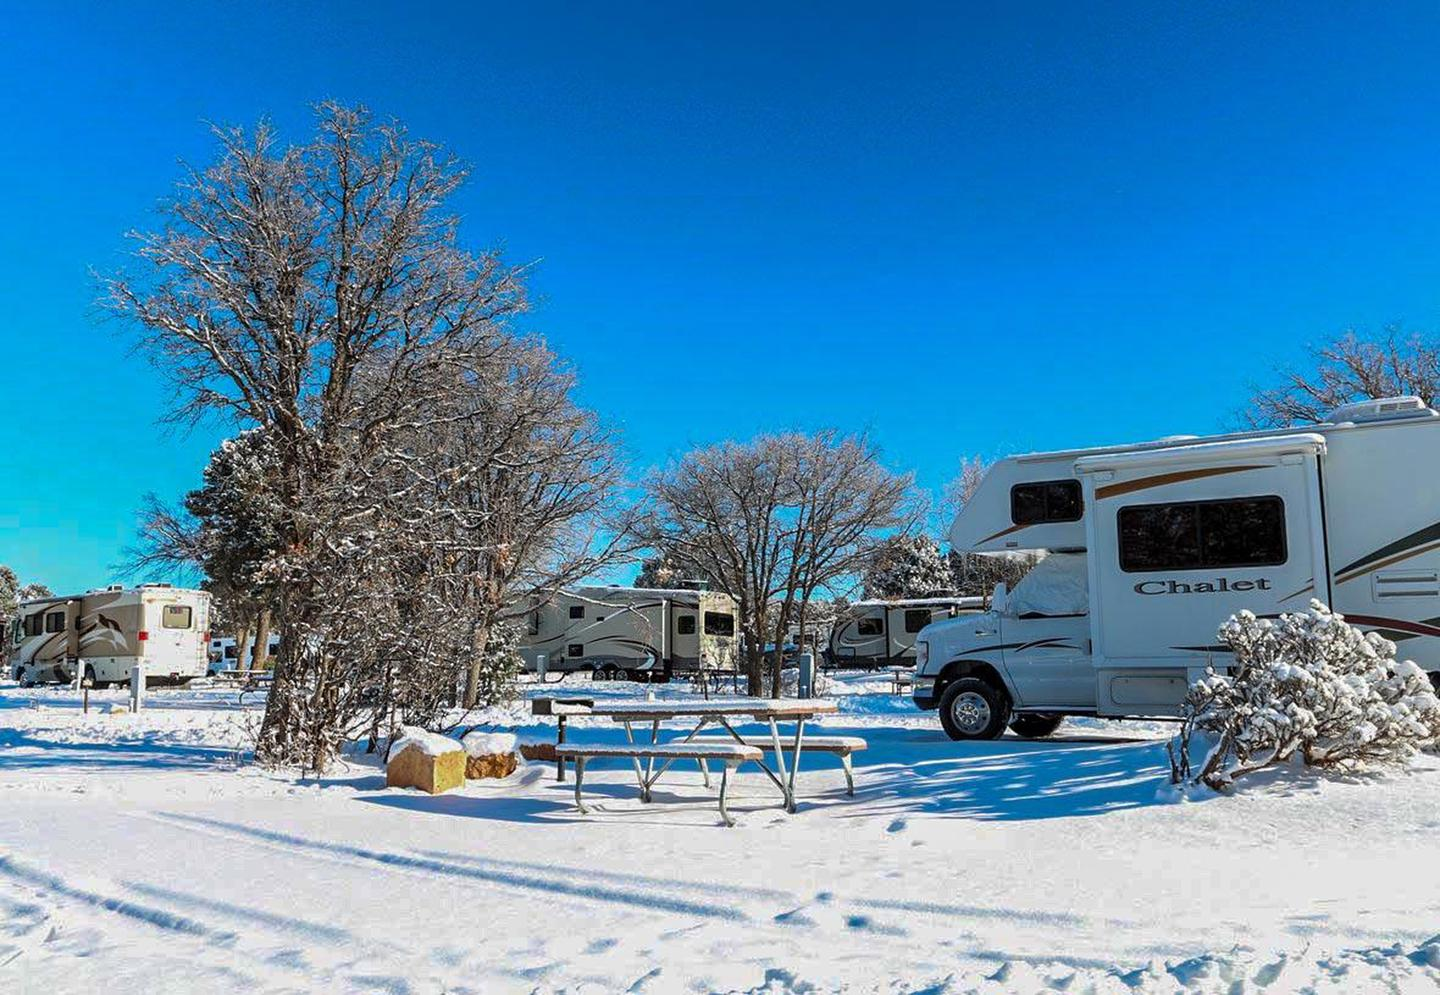 Trailer Village 004Experience Grand Canyon during winter at Trailer Village RV Park.